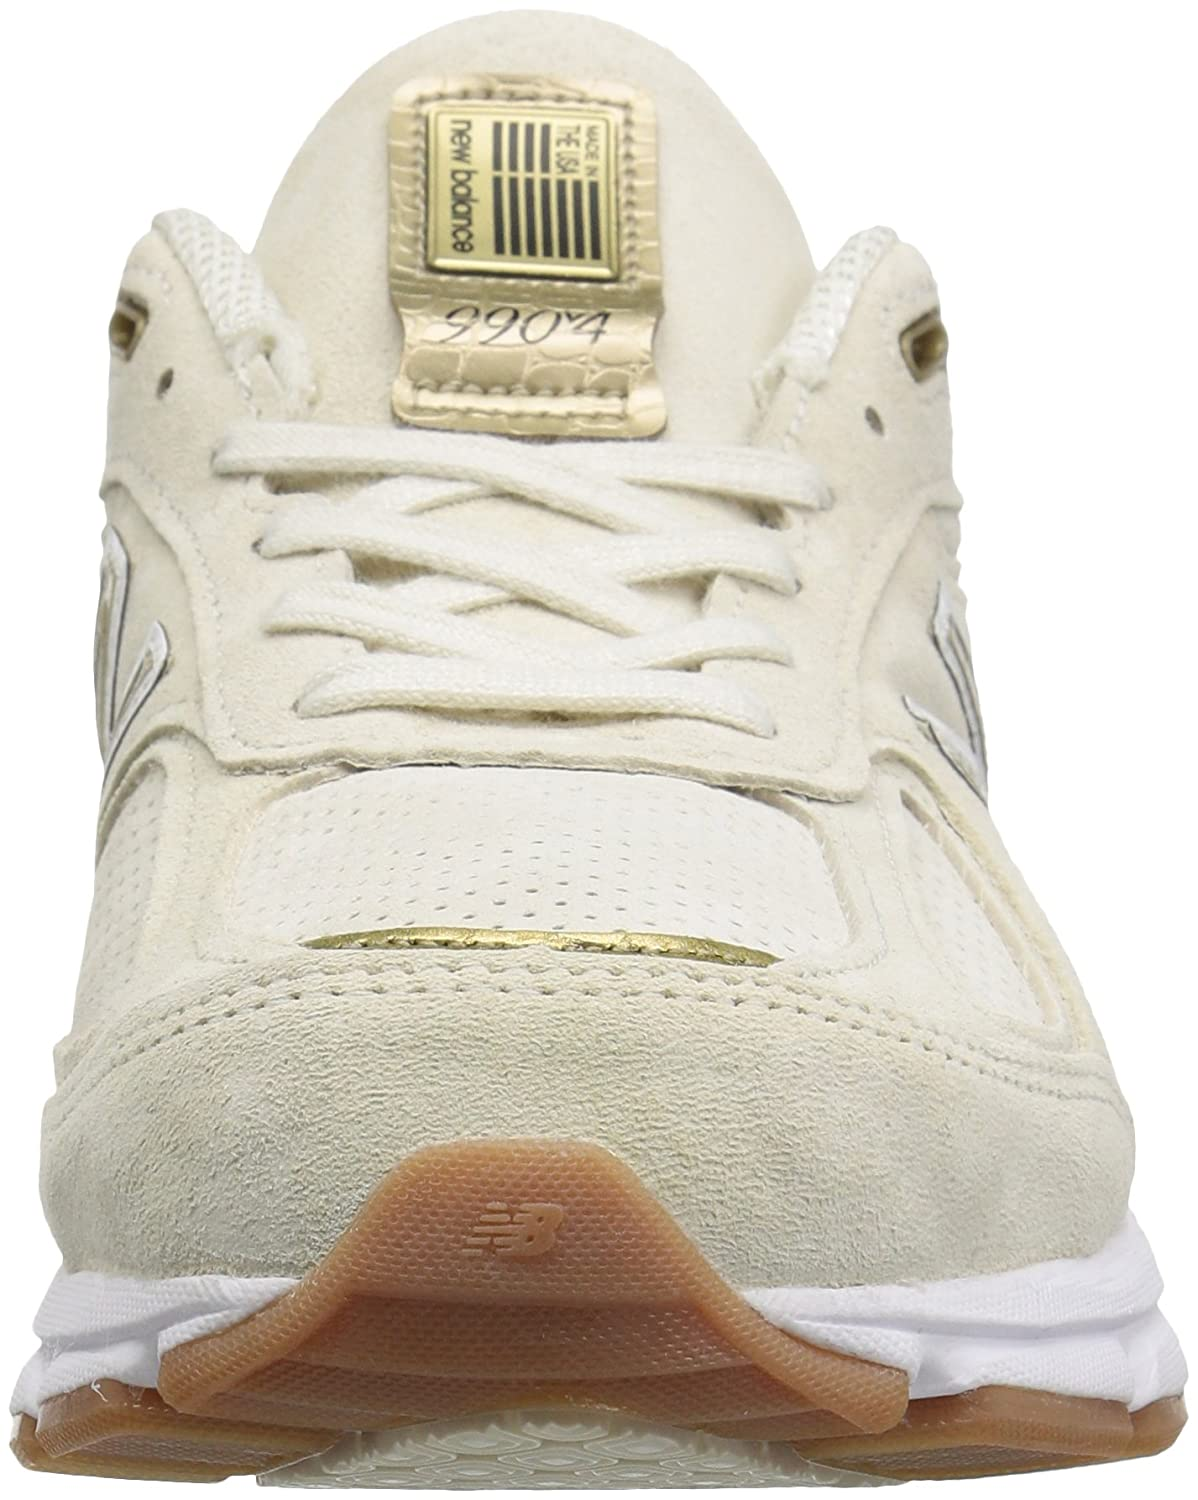 New-Balance-990-990v4-Classicc-Retro-Fashion-Sneaker-Made-in-USA thumbnail 3